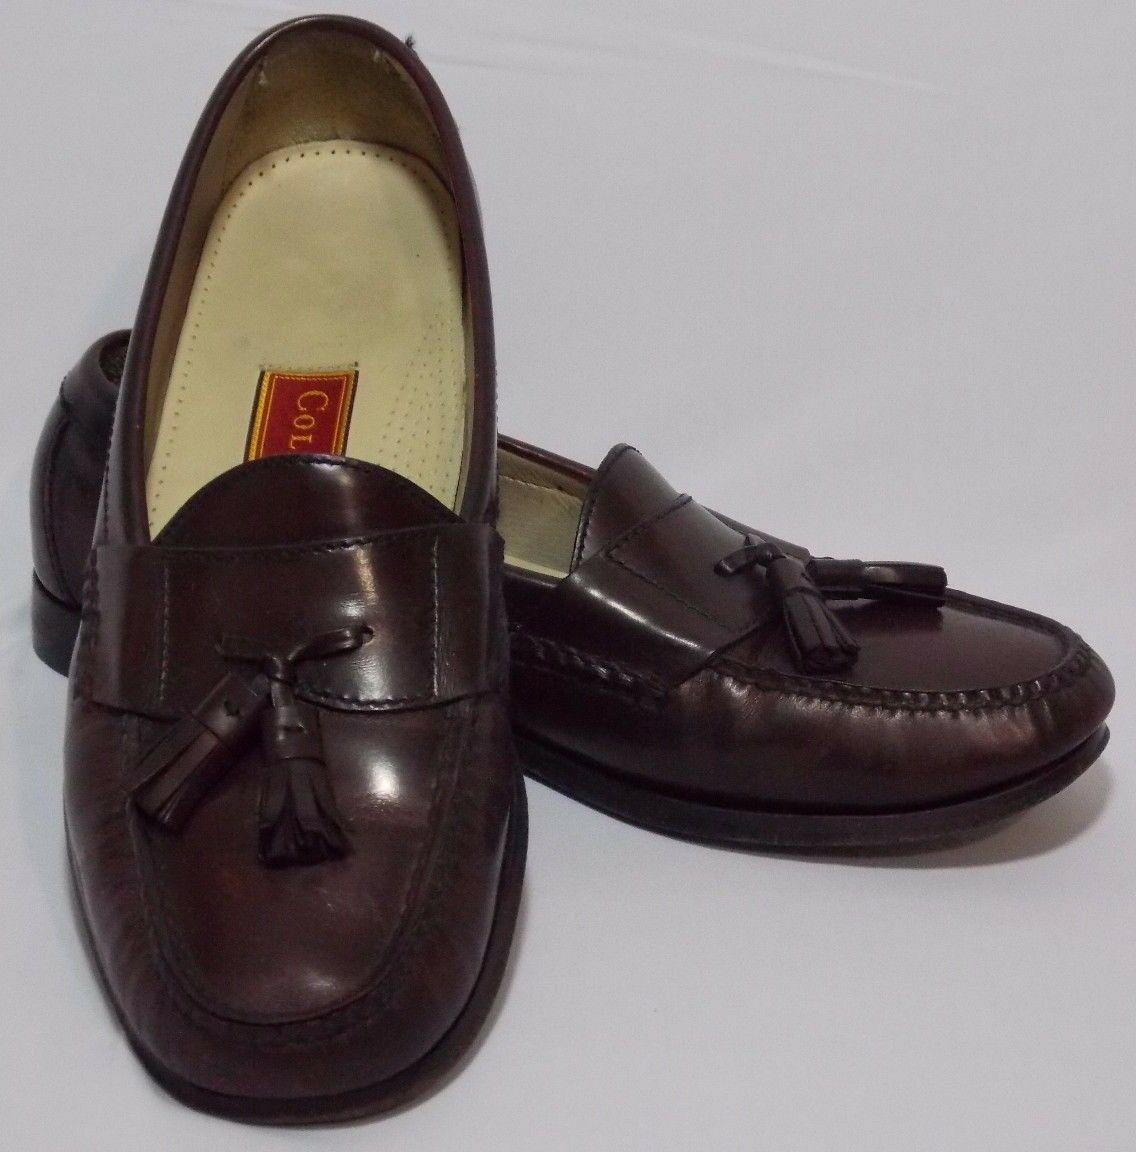 Cole Haan City Slide on Loafers Pinched Tassels Burgundy Pelle Size 9.5 D